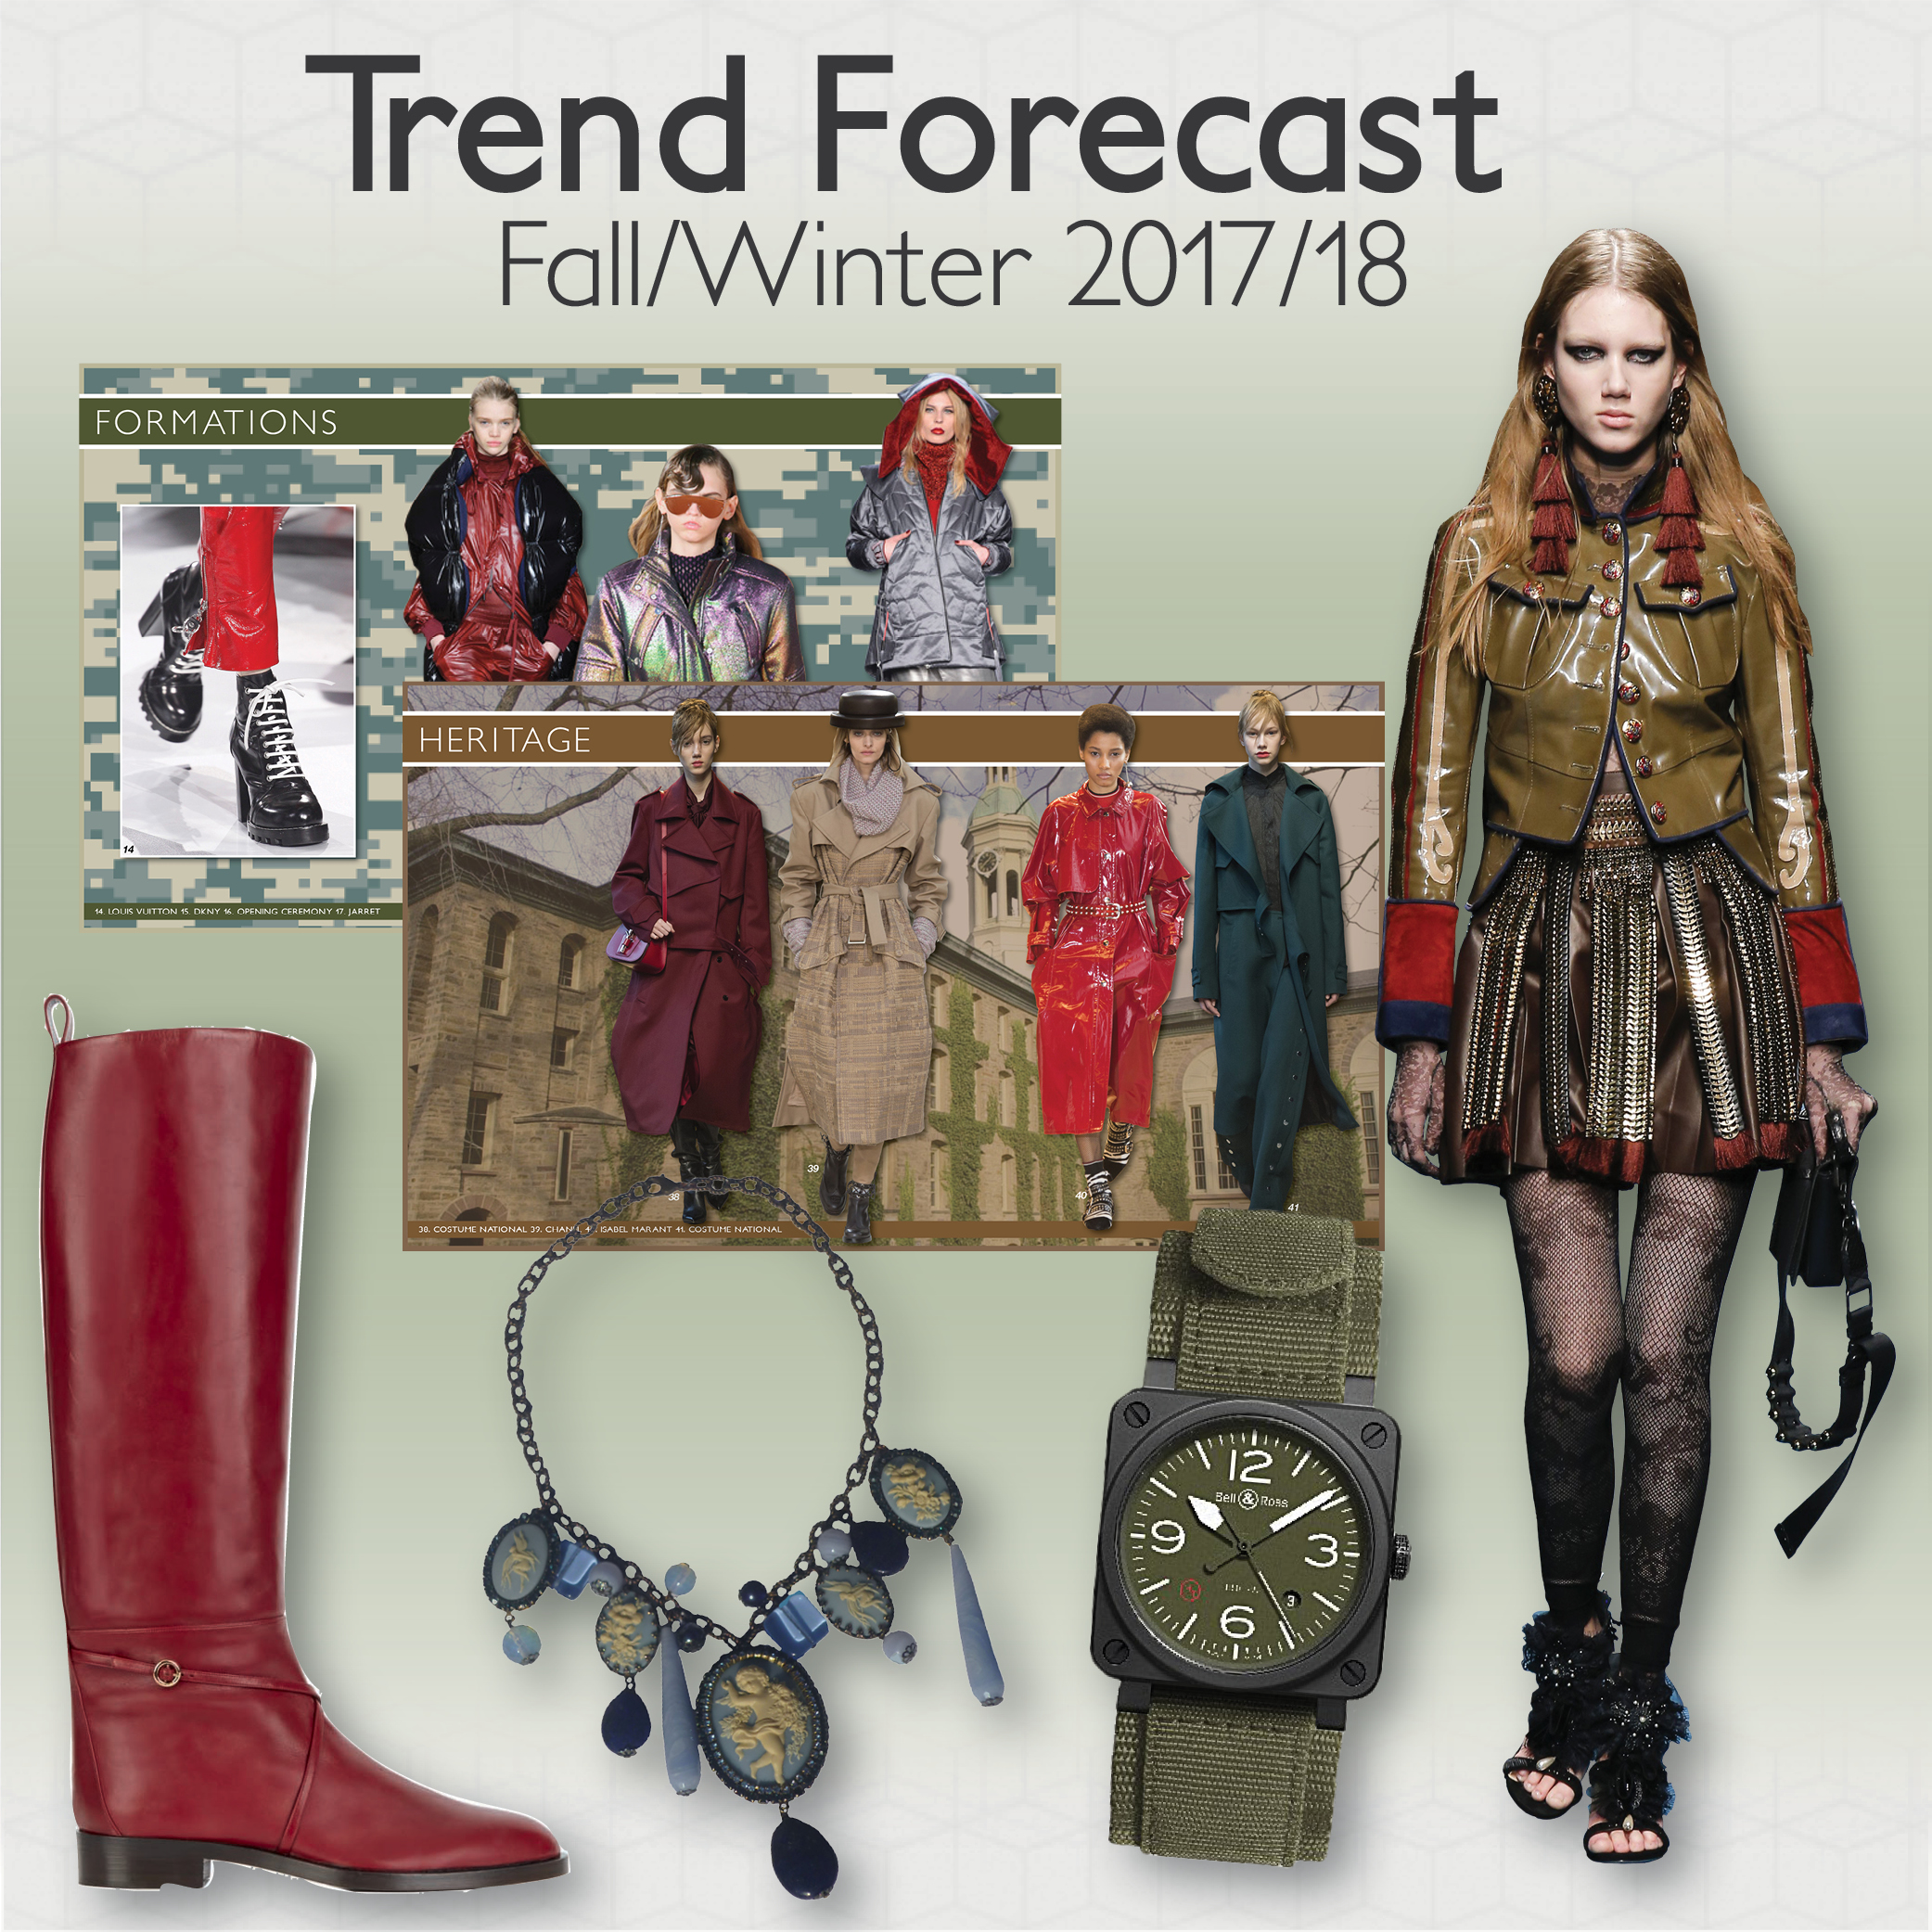 Fall Winter 2017 18 Trends Forecast Colour Trends